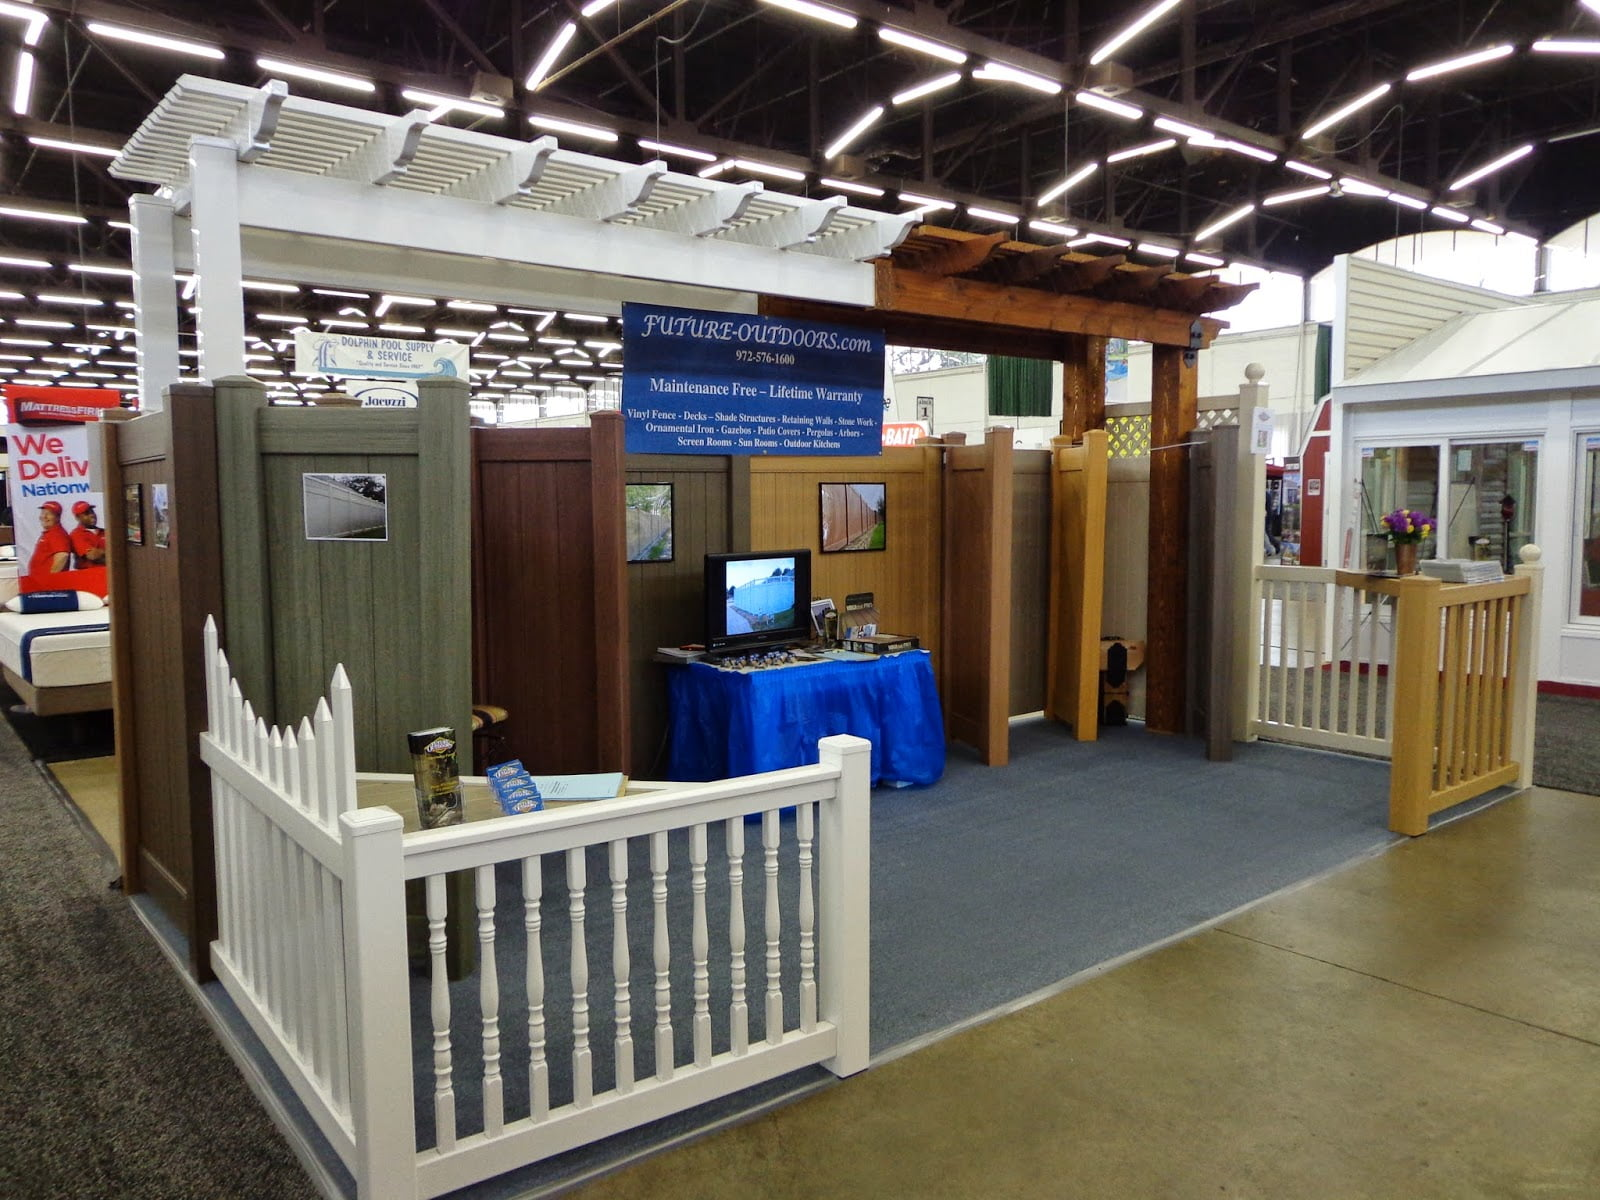 Visit Future Outdoors at the 36th Spring Texas Home & Garden Show